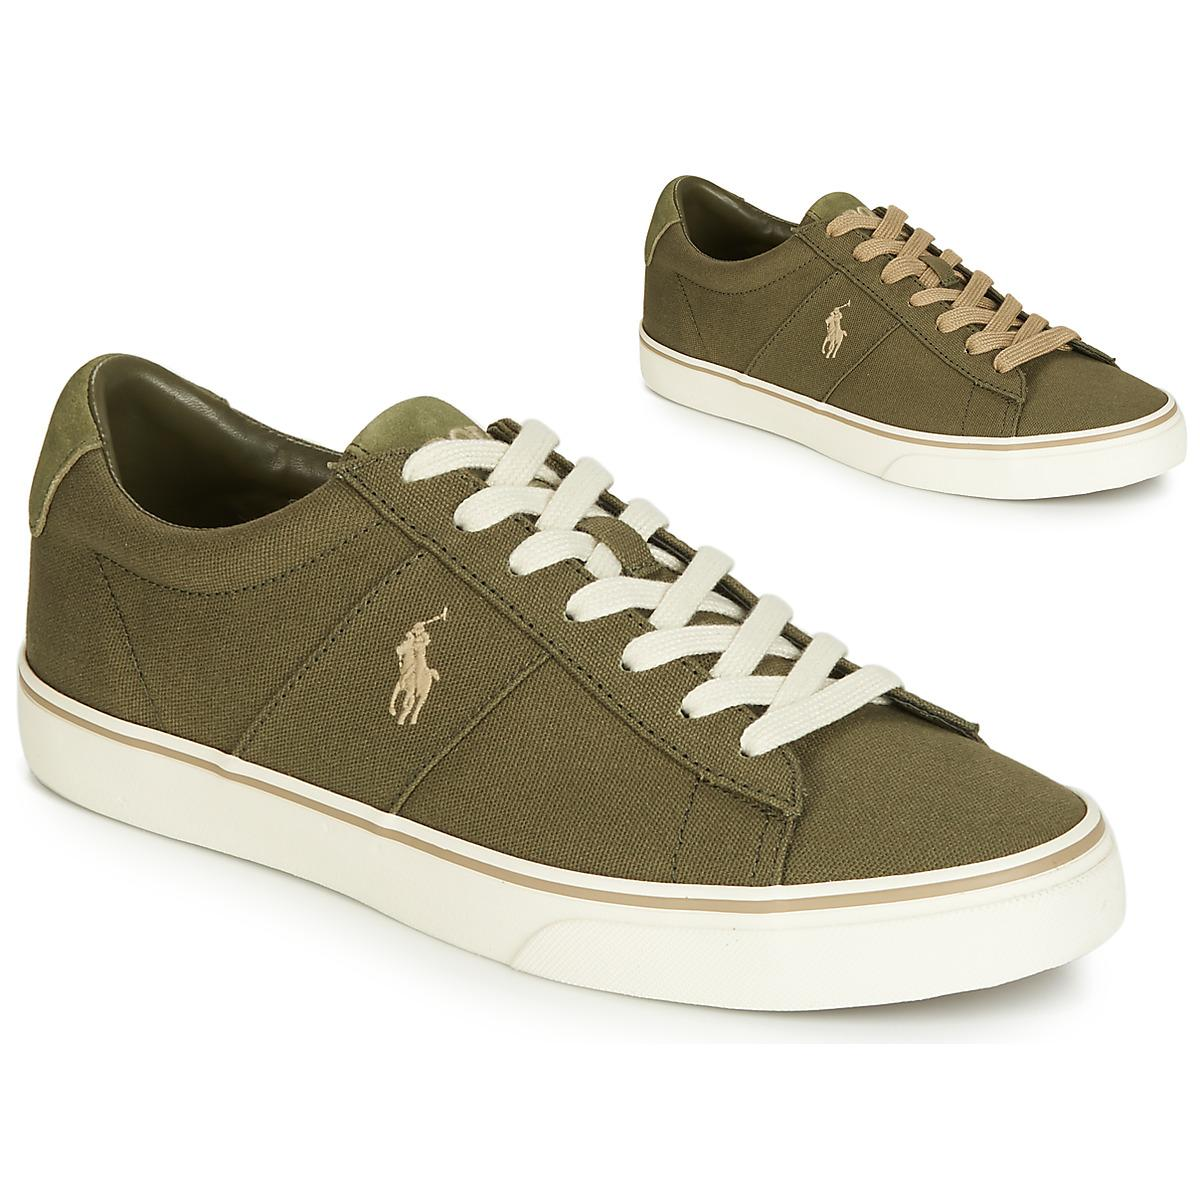 8121841eaf36 Polo Ralph Lauren Sayer Men s Shoes (trainers) In Green in Green for ...